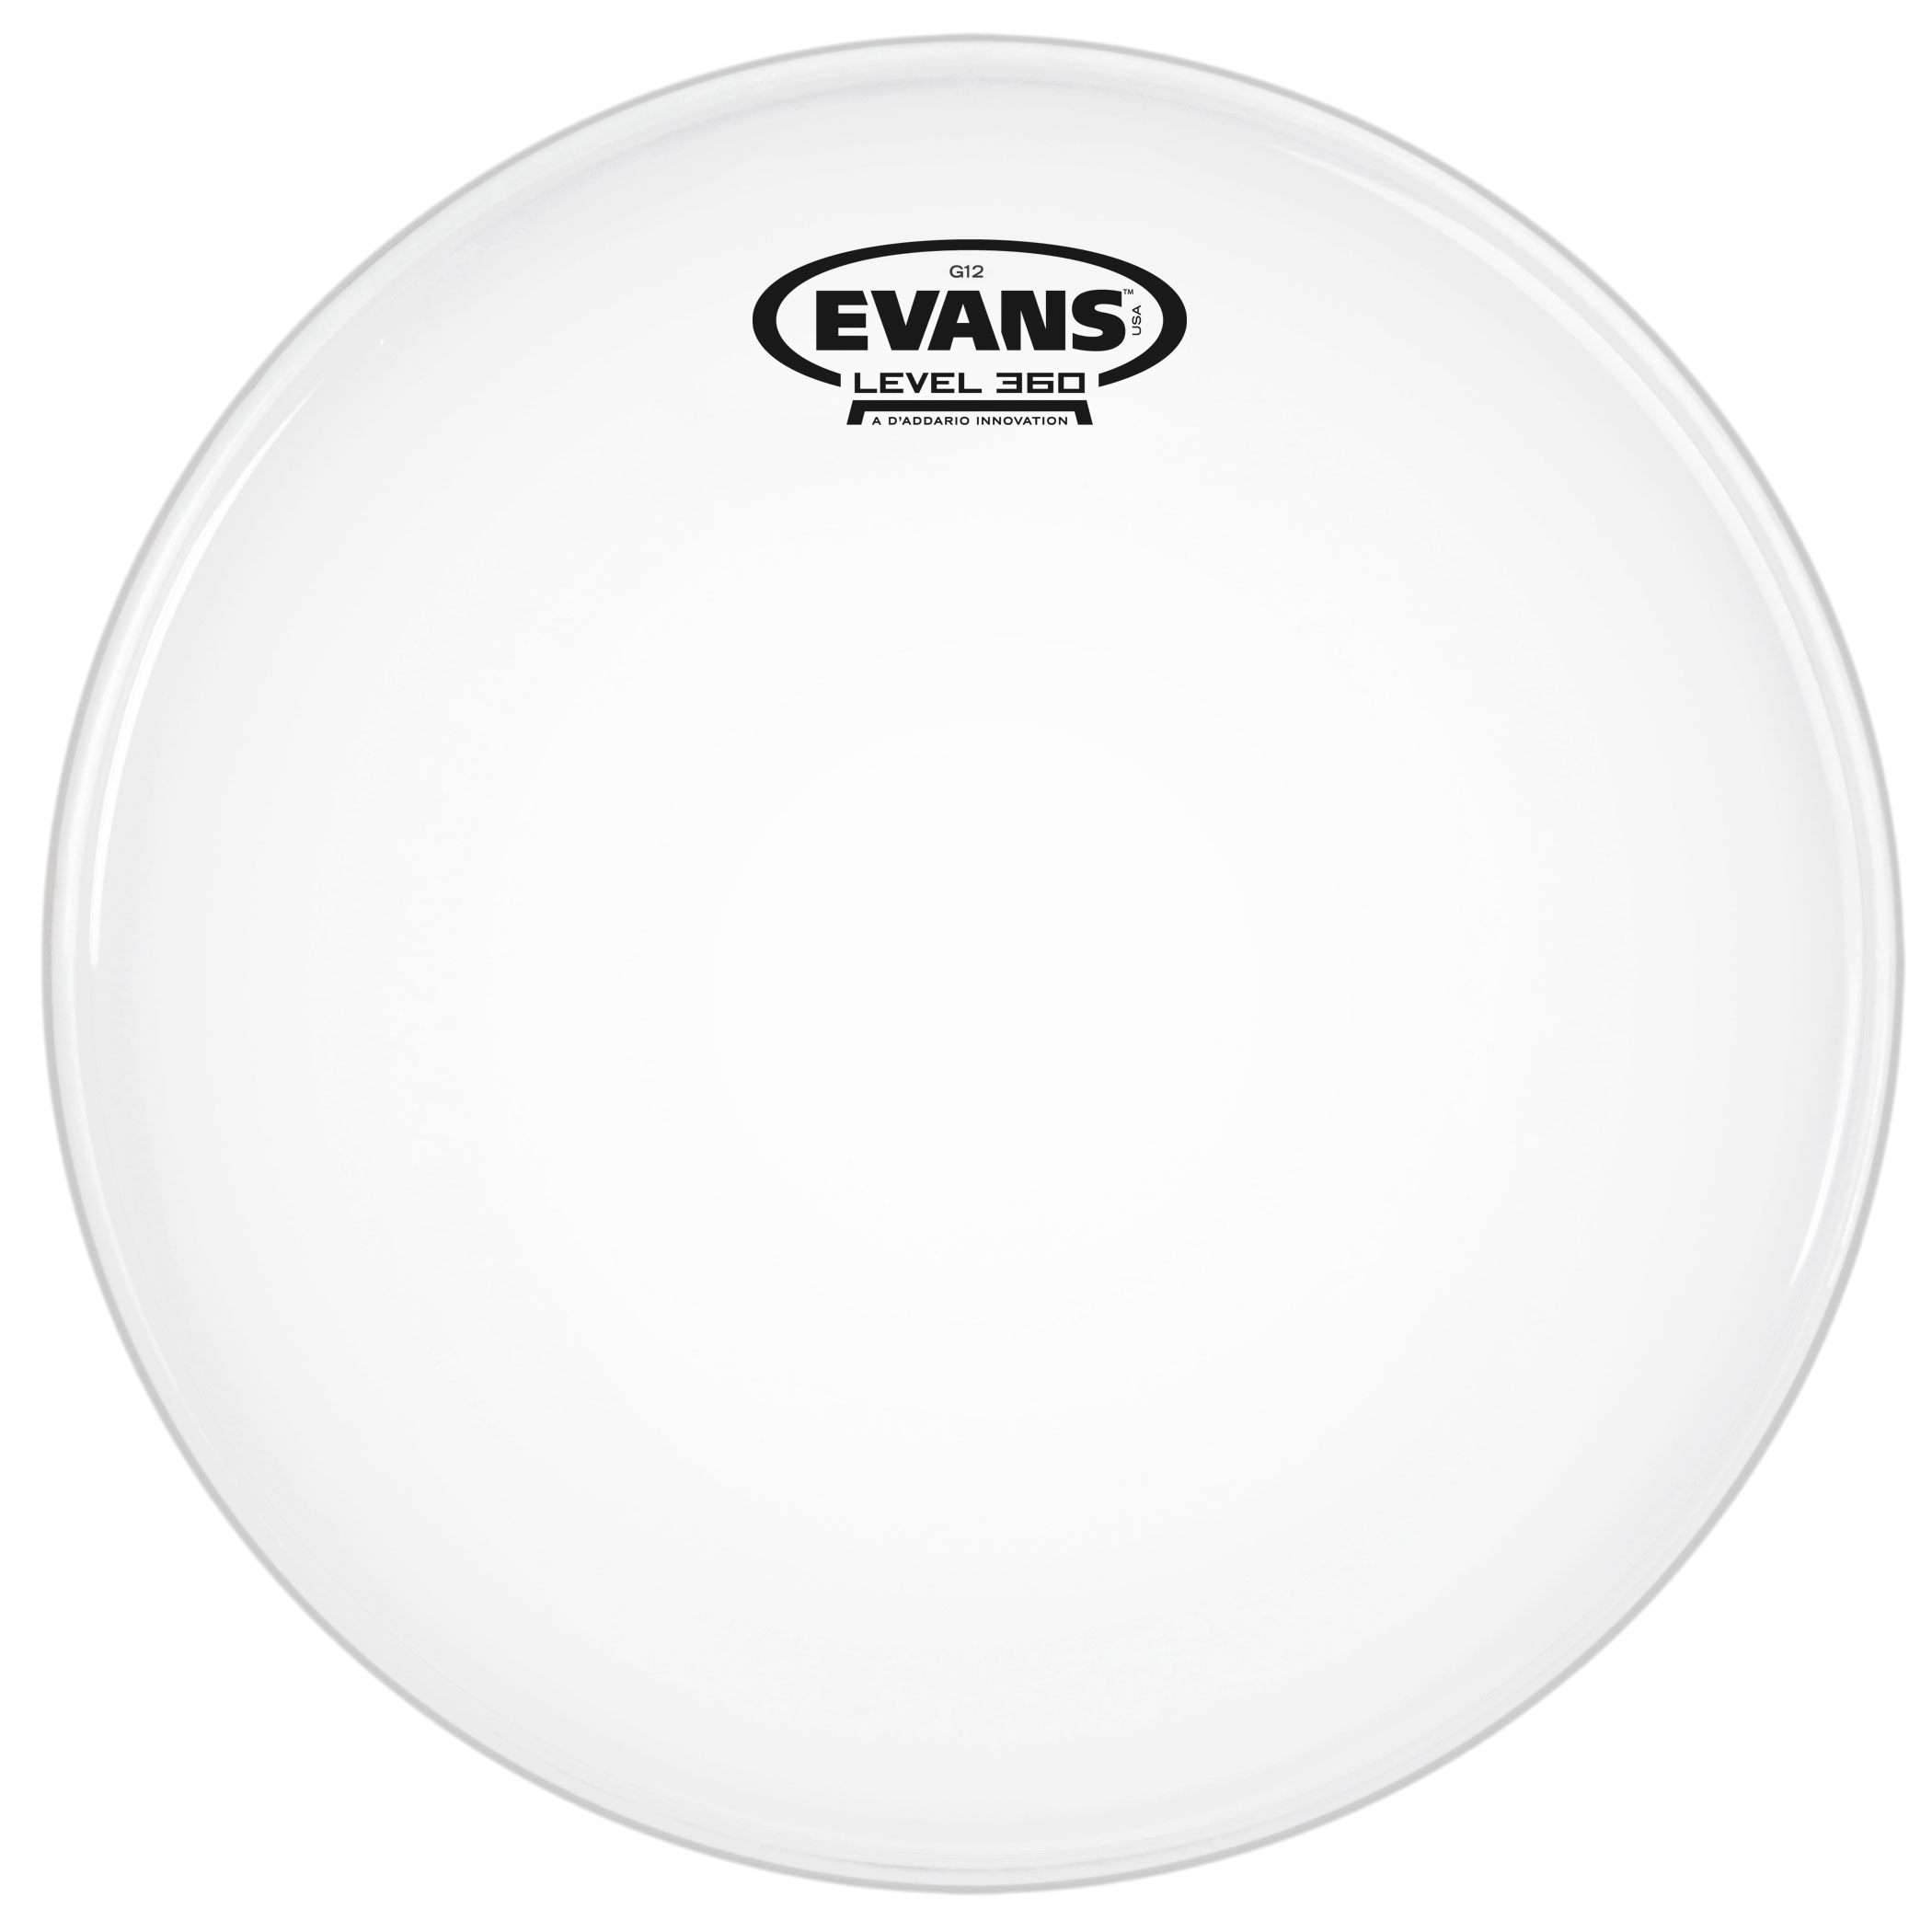 "Evans 12"" G12 Coated Head"